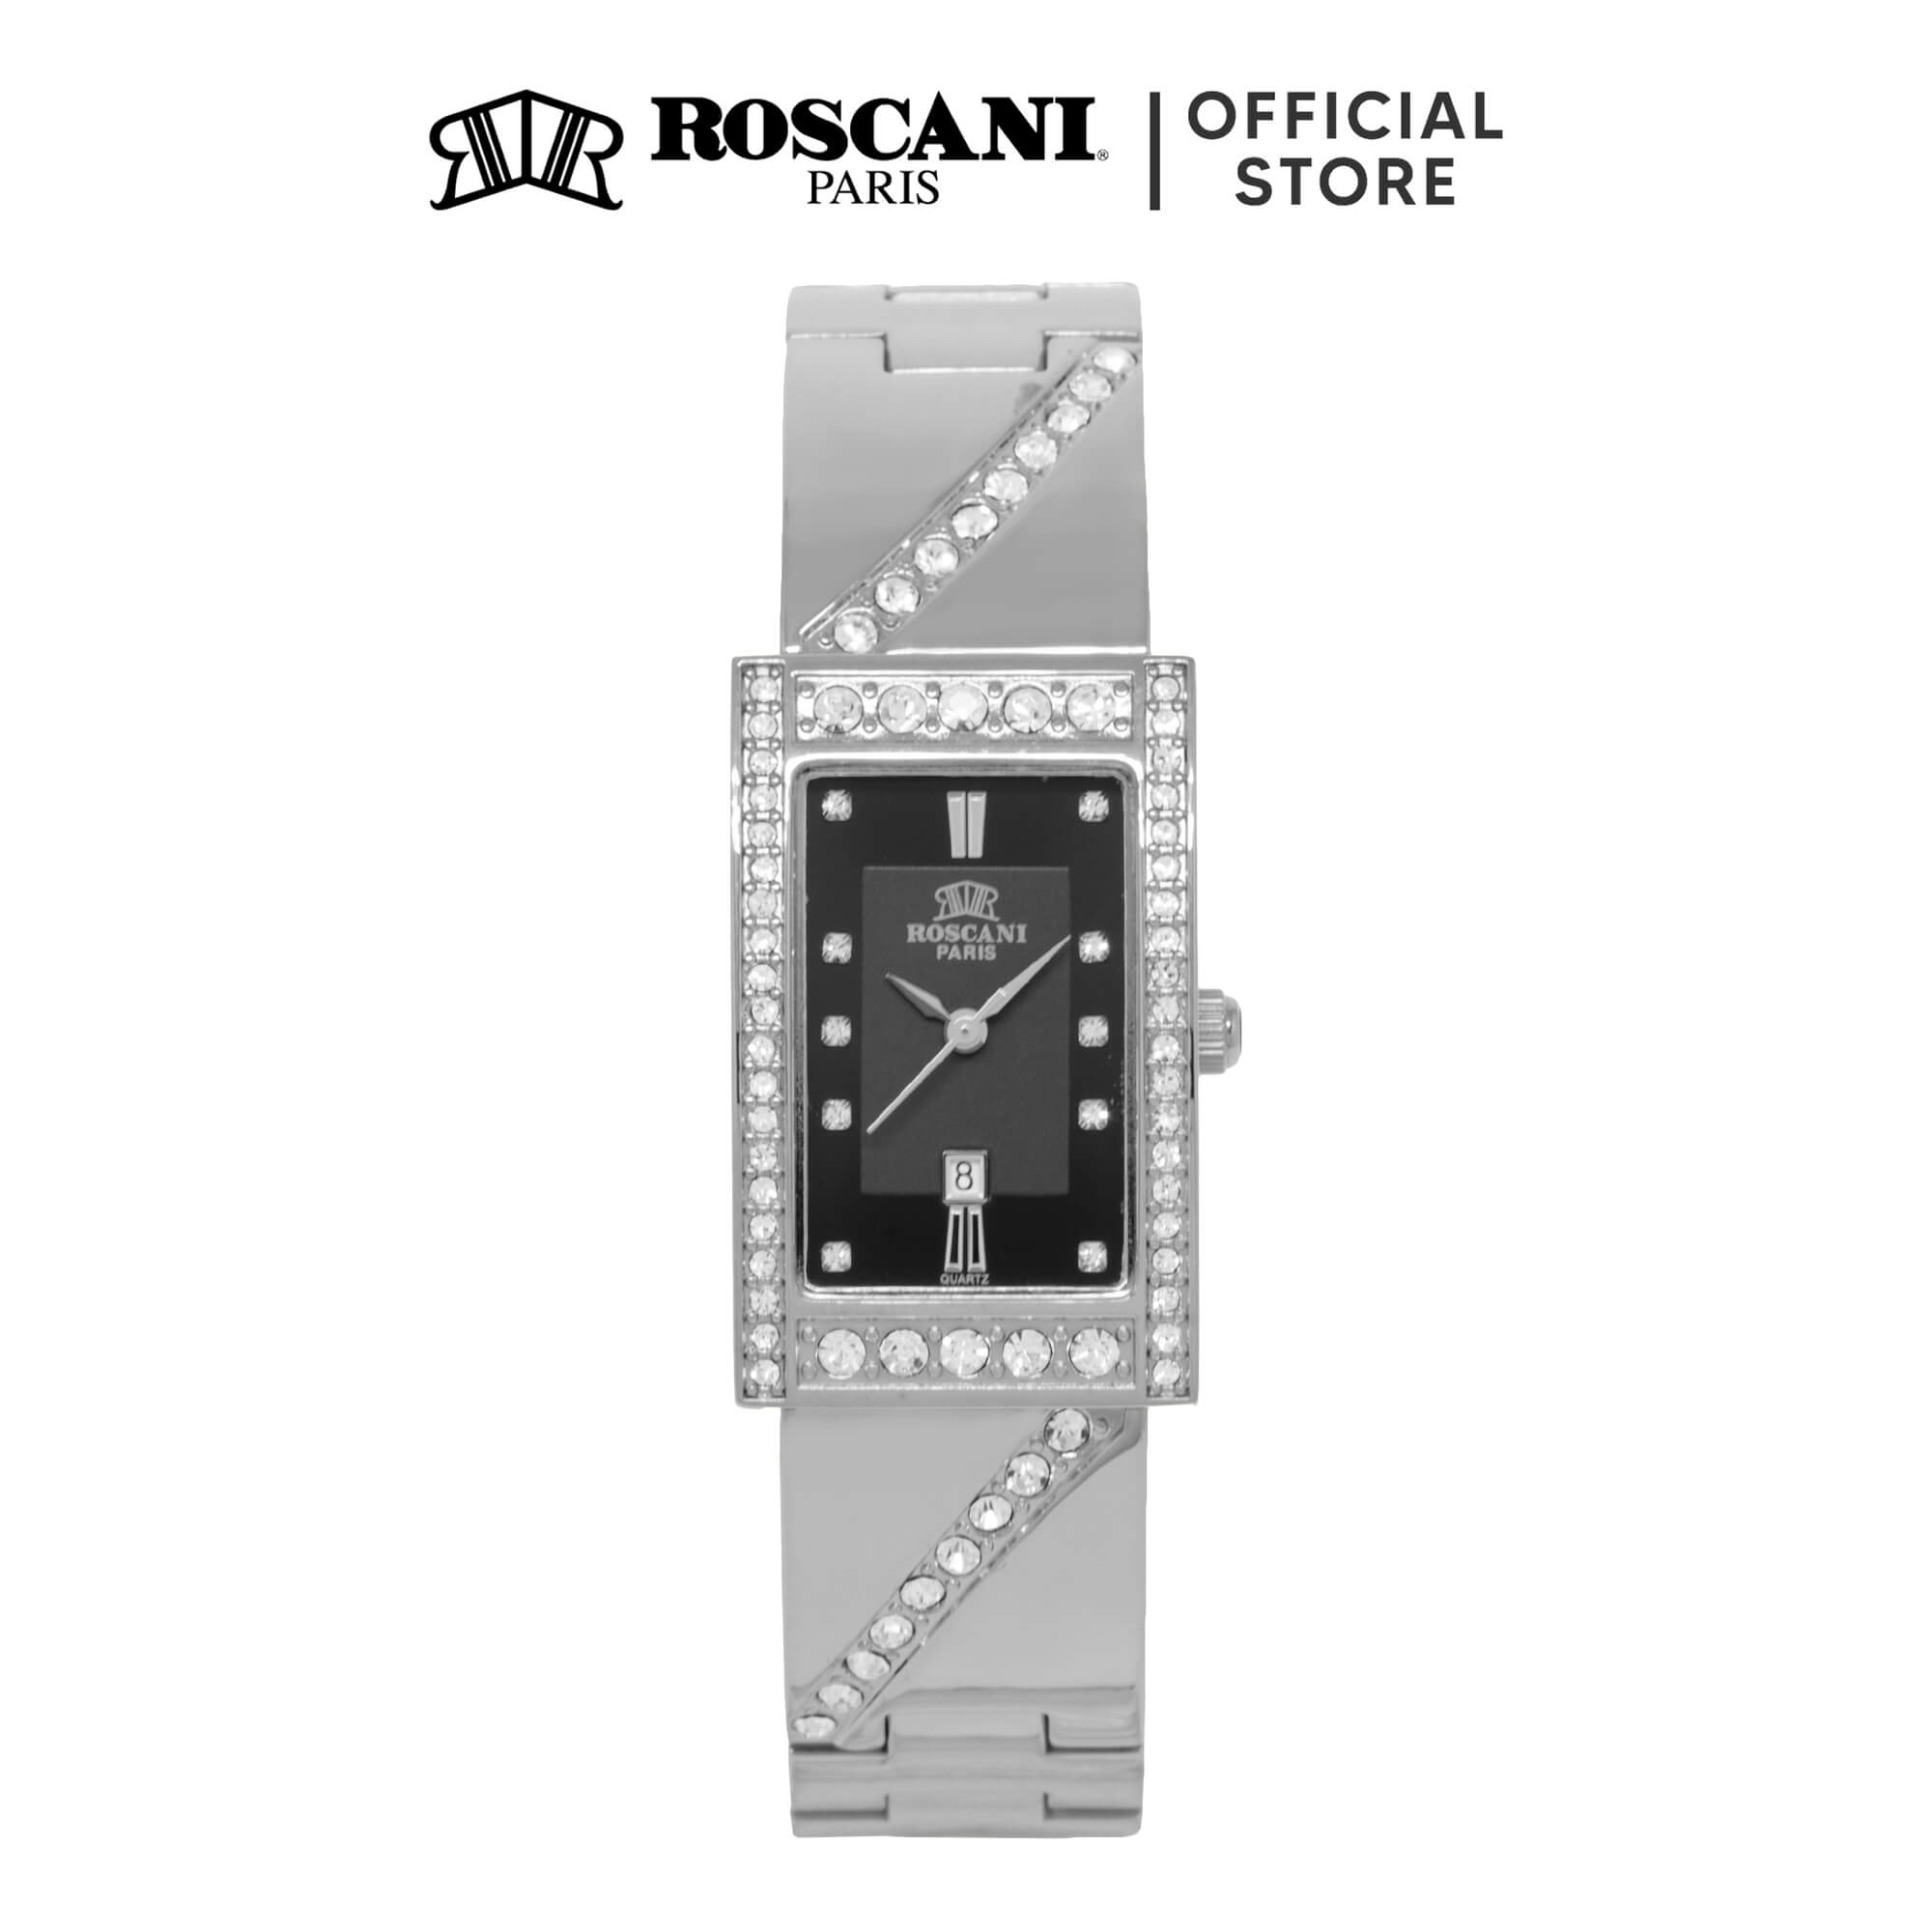 Roscani Rosemary B75 (Curved Crystal + Platinum Plating) Bracelet Women Watch